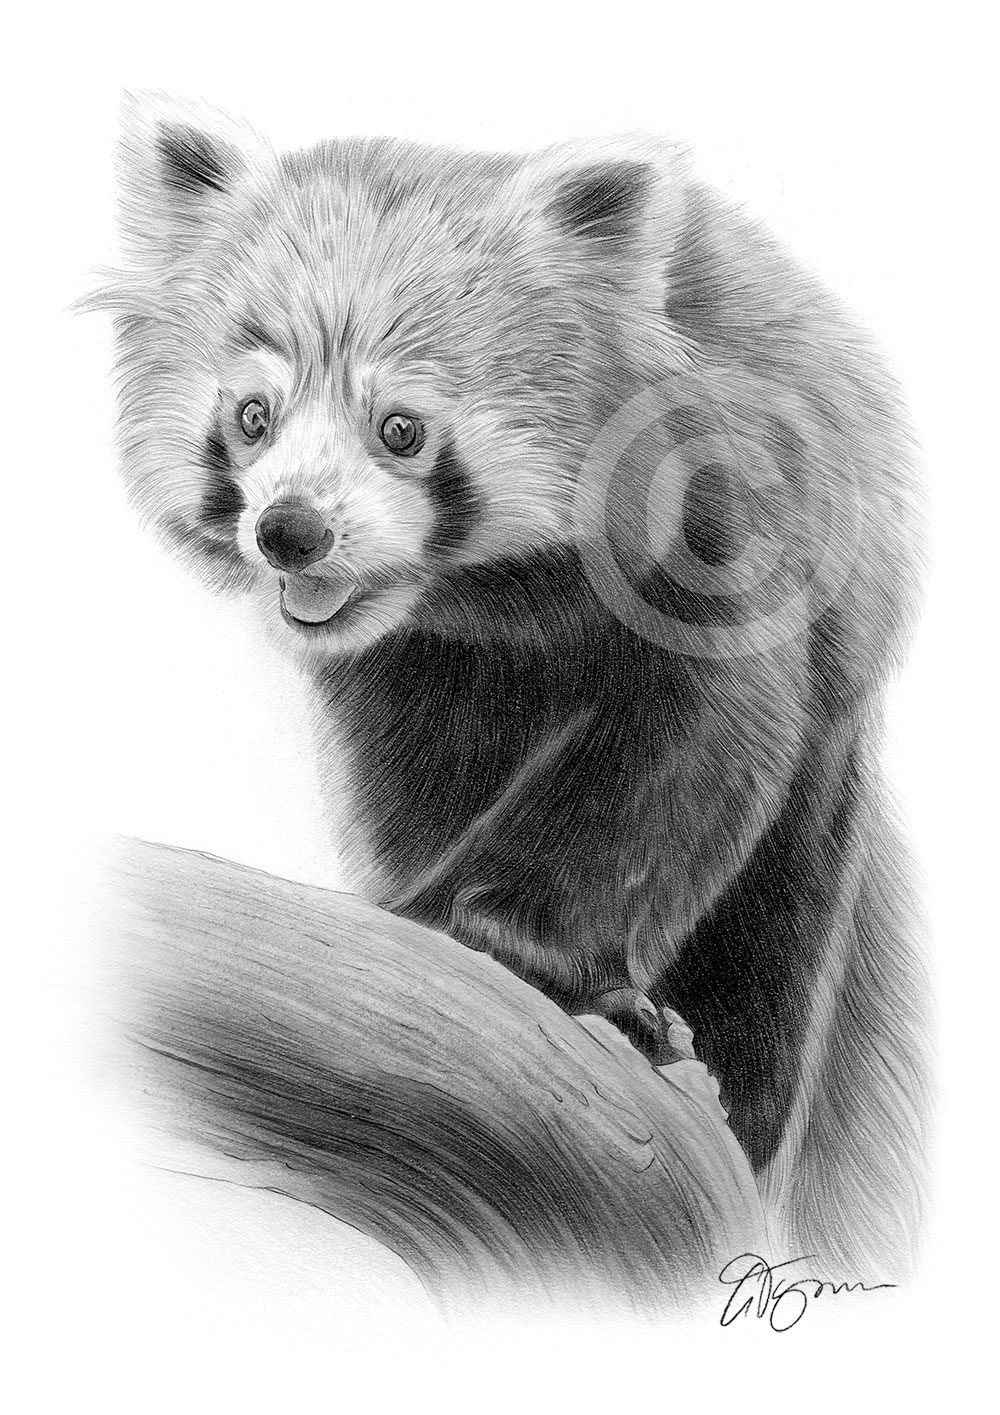 Pencil drawing of a red panda by artist Gary Tymon